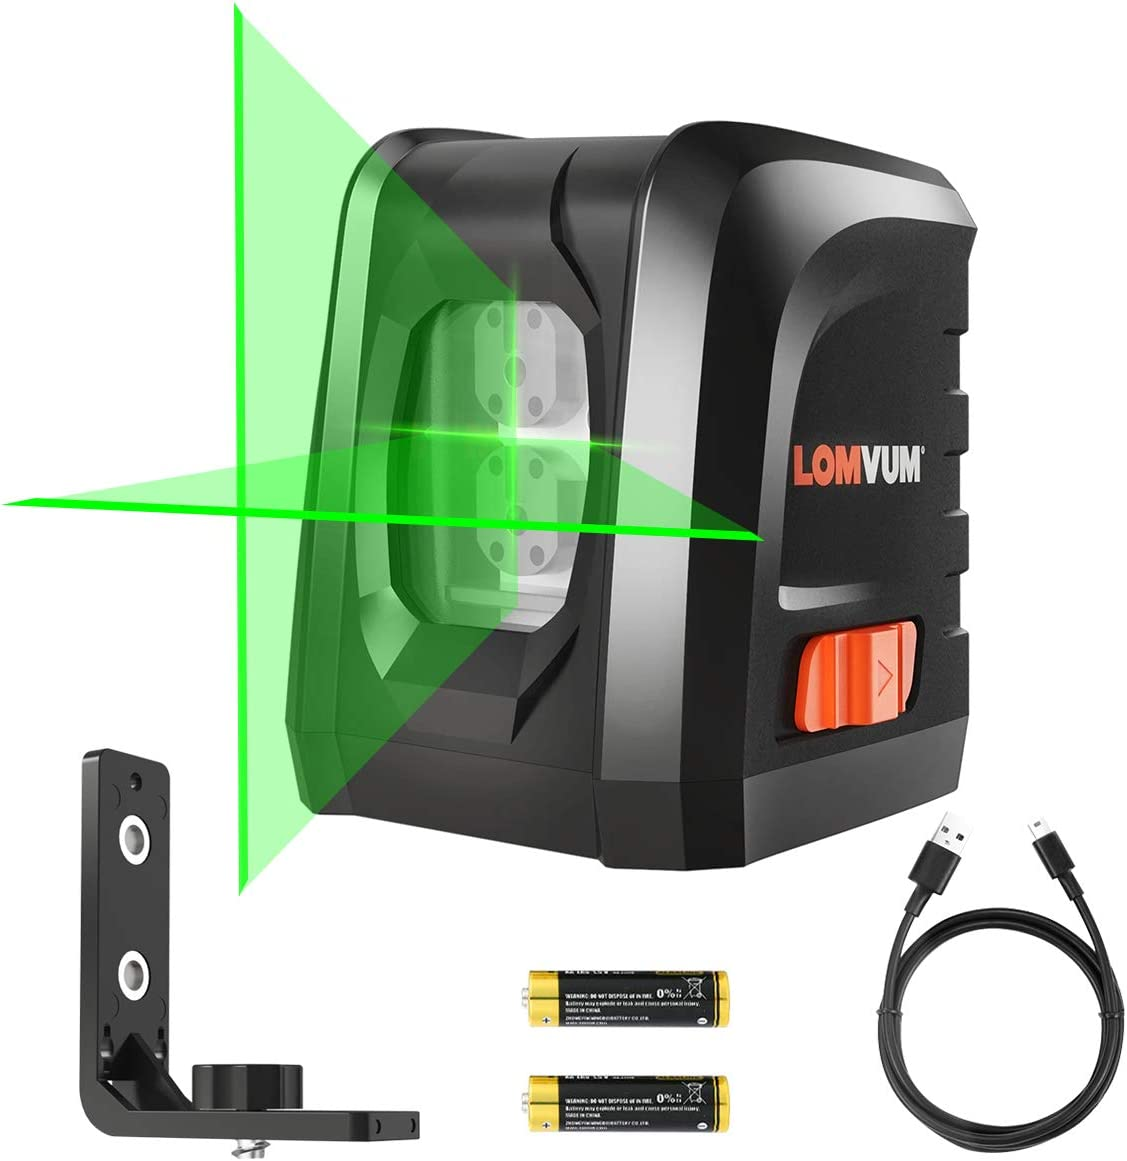 Laser Level, LOMVUM 3 Mode Green Laser Level 100ft Self-Leveling Horizontal Vertical Line and Cross-Line with Dual Laser Sources, Magnetic Pivoting Base, Battery Included